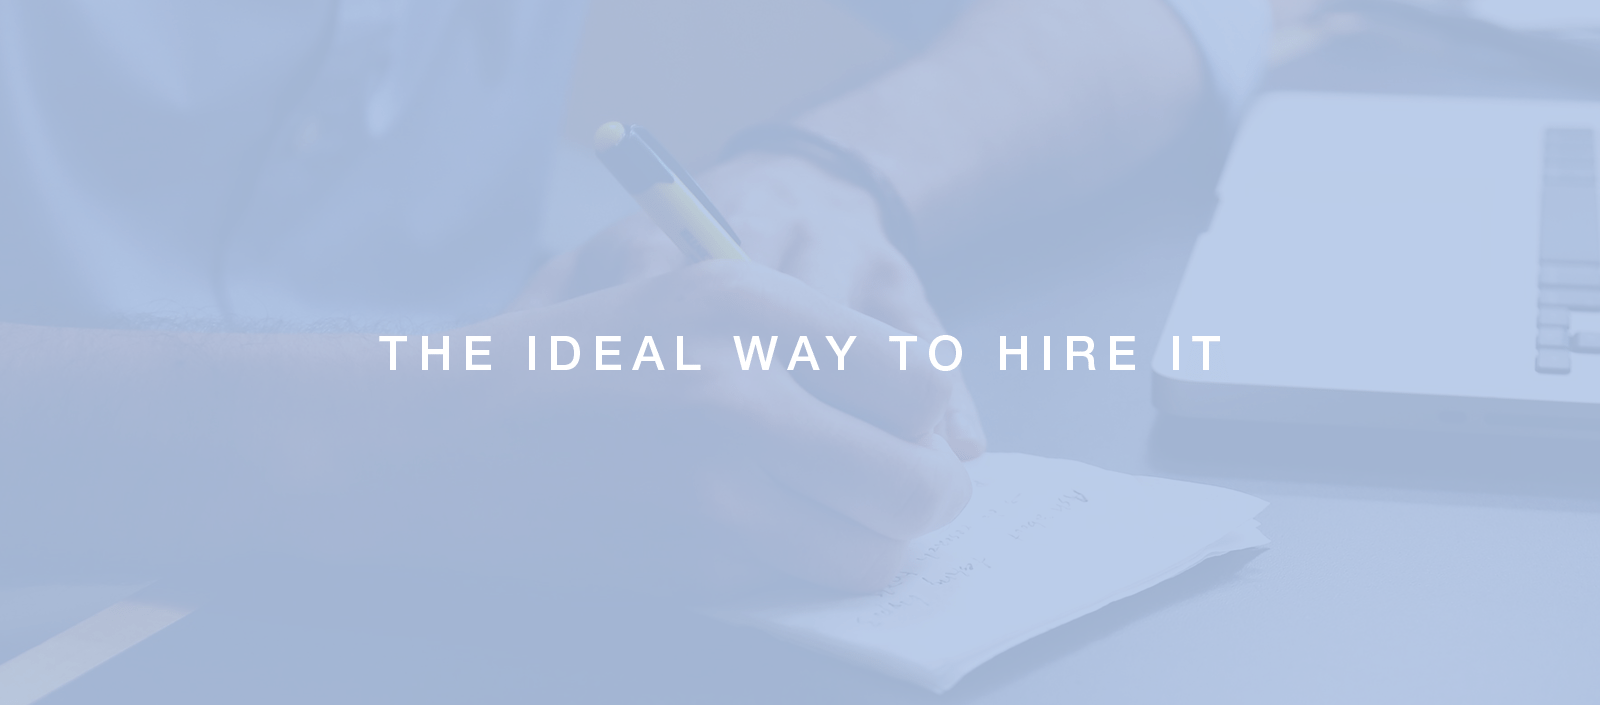 Hire IT: Ideal Ways Hiring Guide: Hire IT Professionals – Stay Ahead